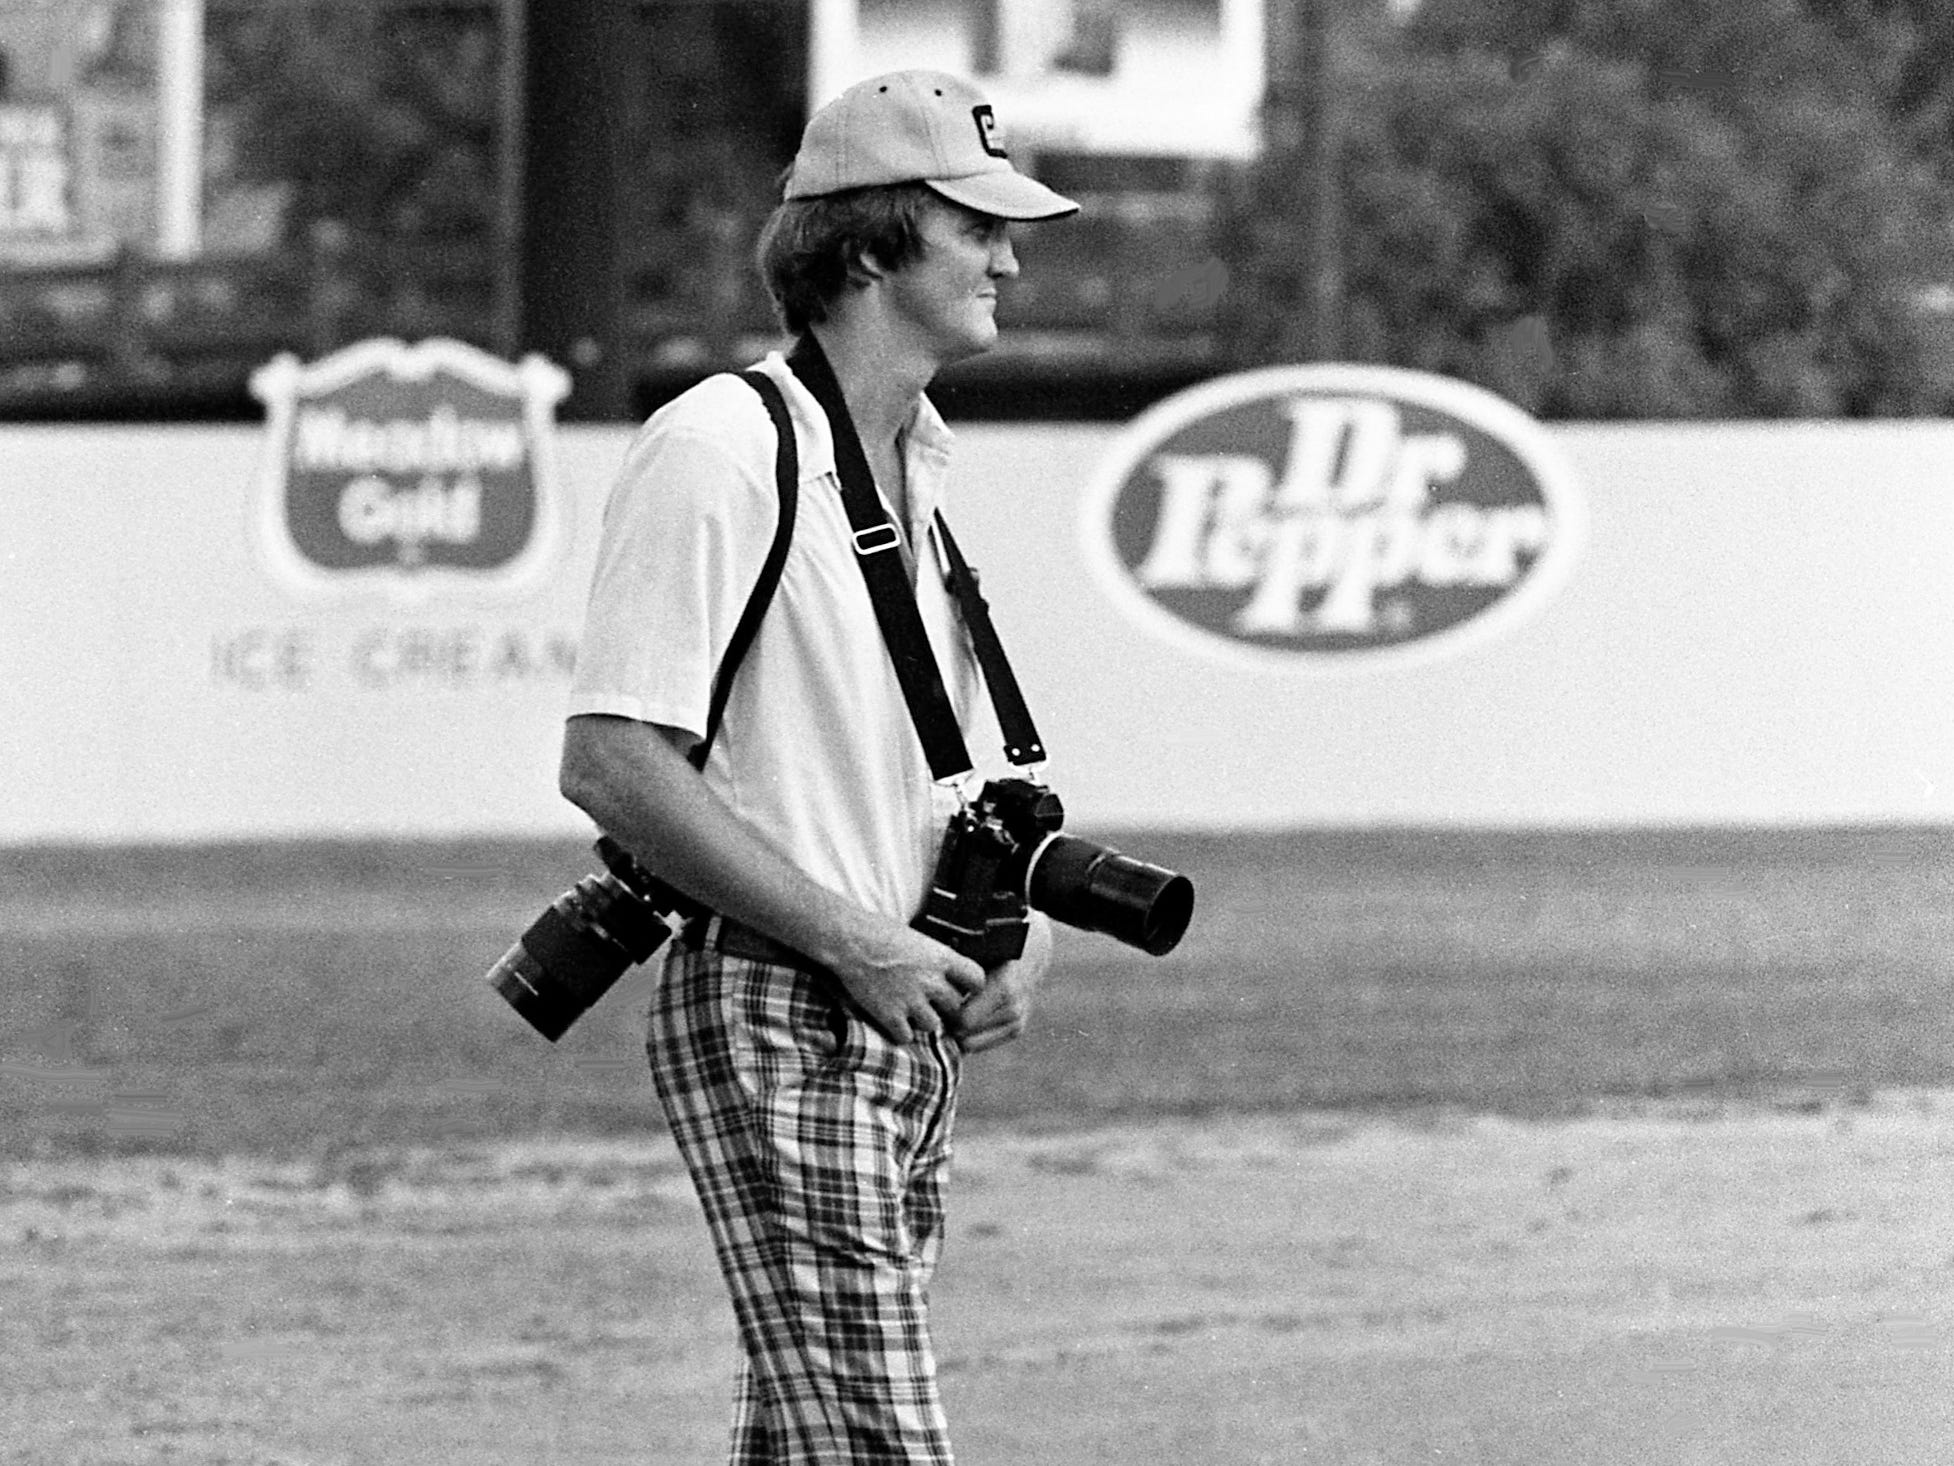 Tennessean staff photographer Dan Loftin is ready to cover the game between the Nashville Sounds and Memphis Chicks at Greer Stadium on July 11, 1978.